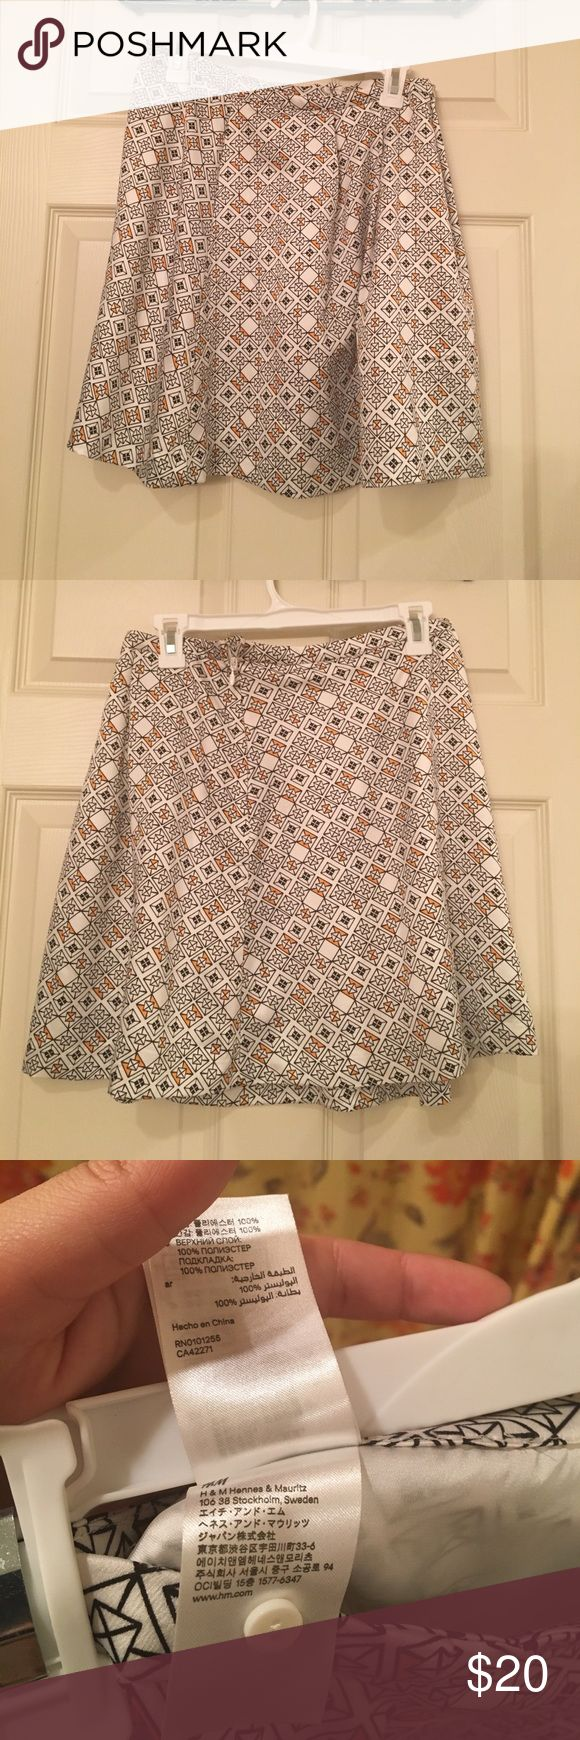 High waisted skirt Fully lined, bought at a thrift store NWOT H&M Skirts Circle & Skater